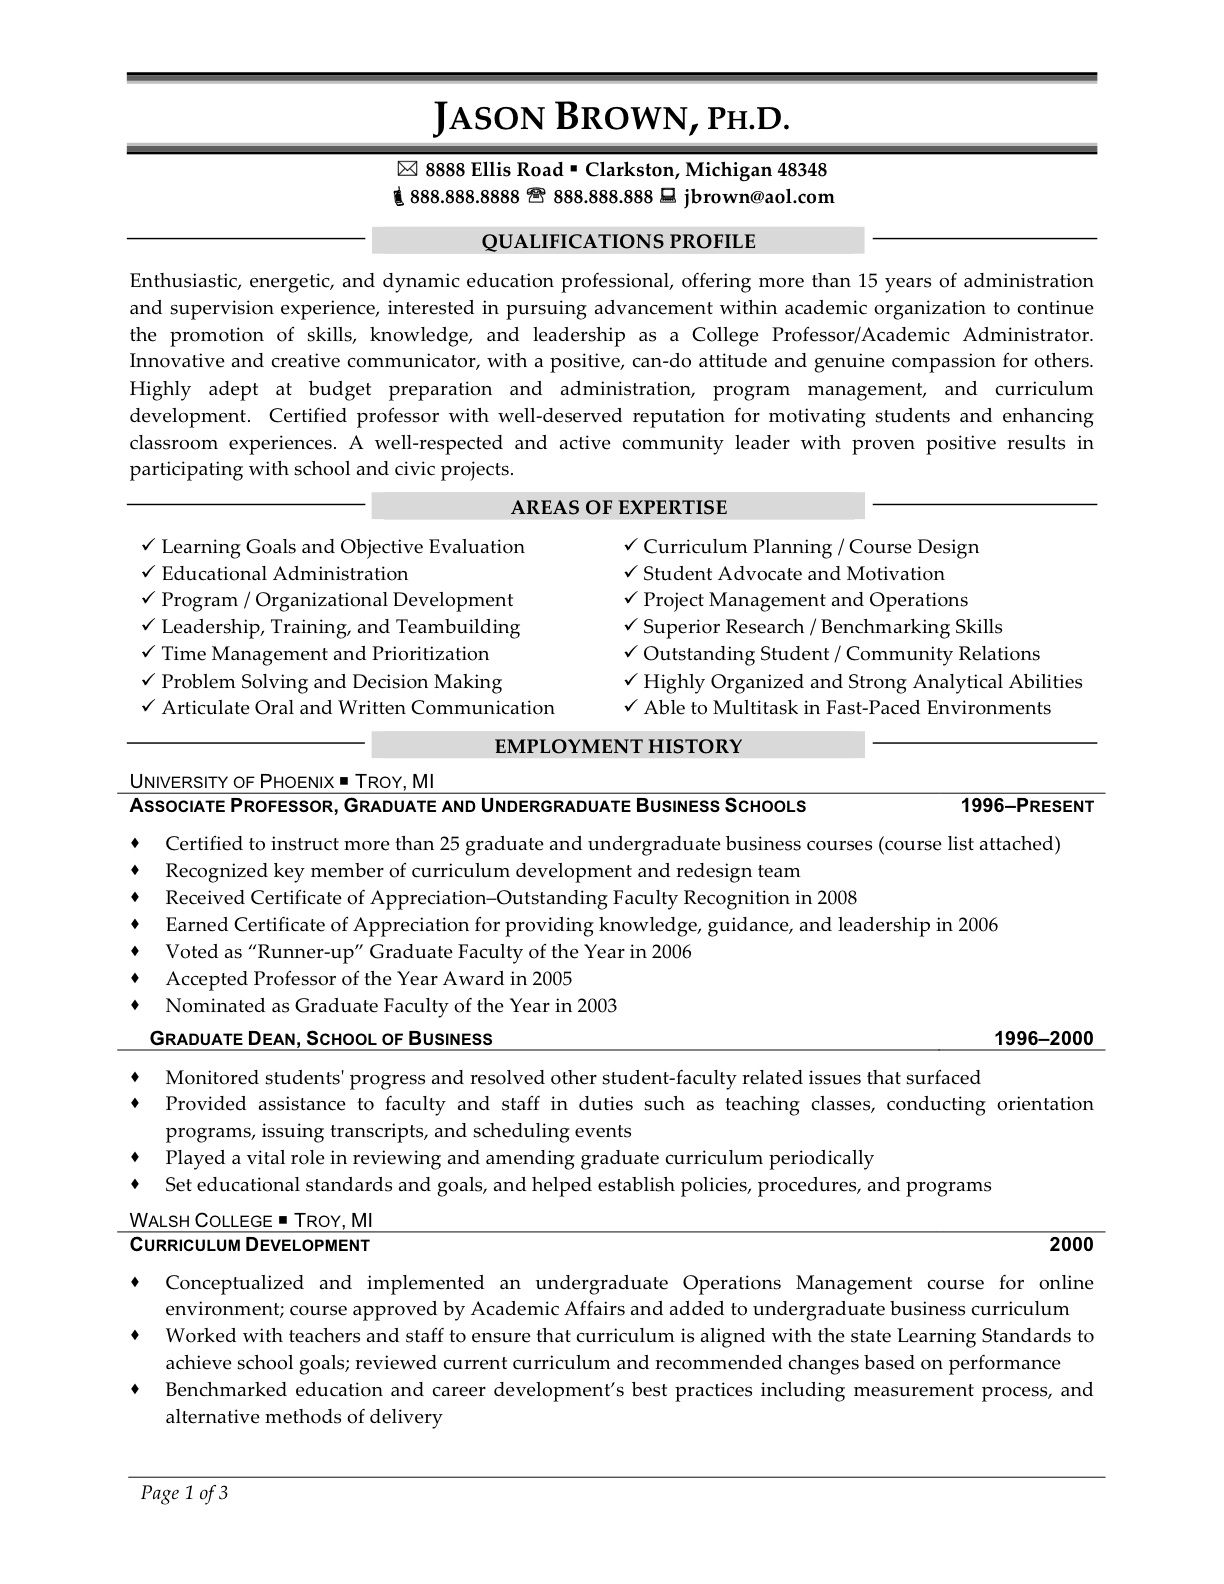 example academic resume sample phd resume for industry sample phd resume for industry engineering